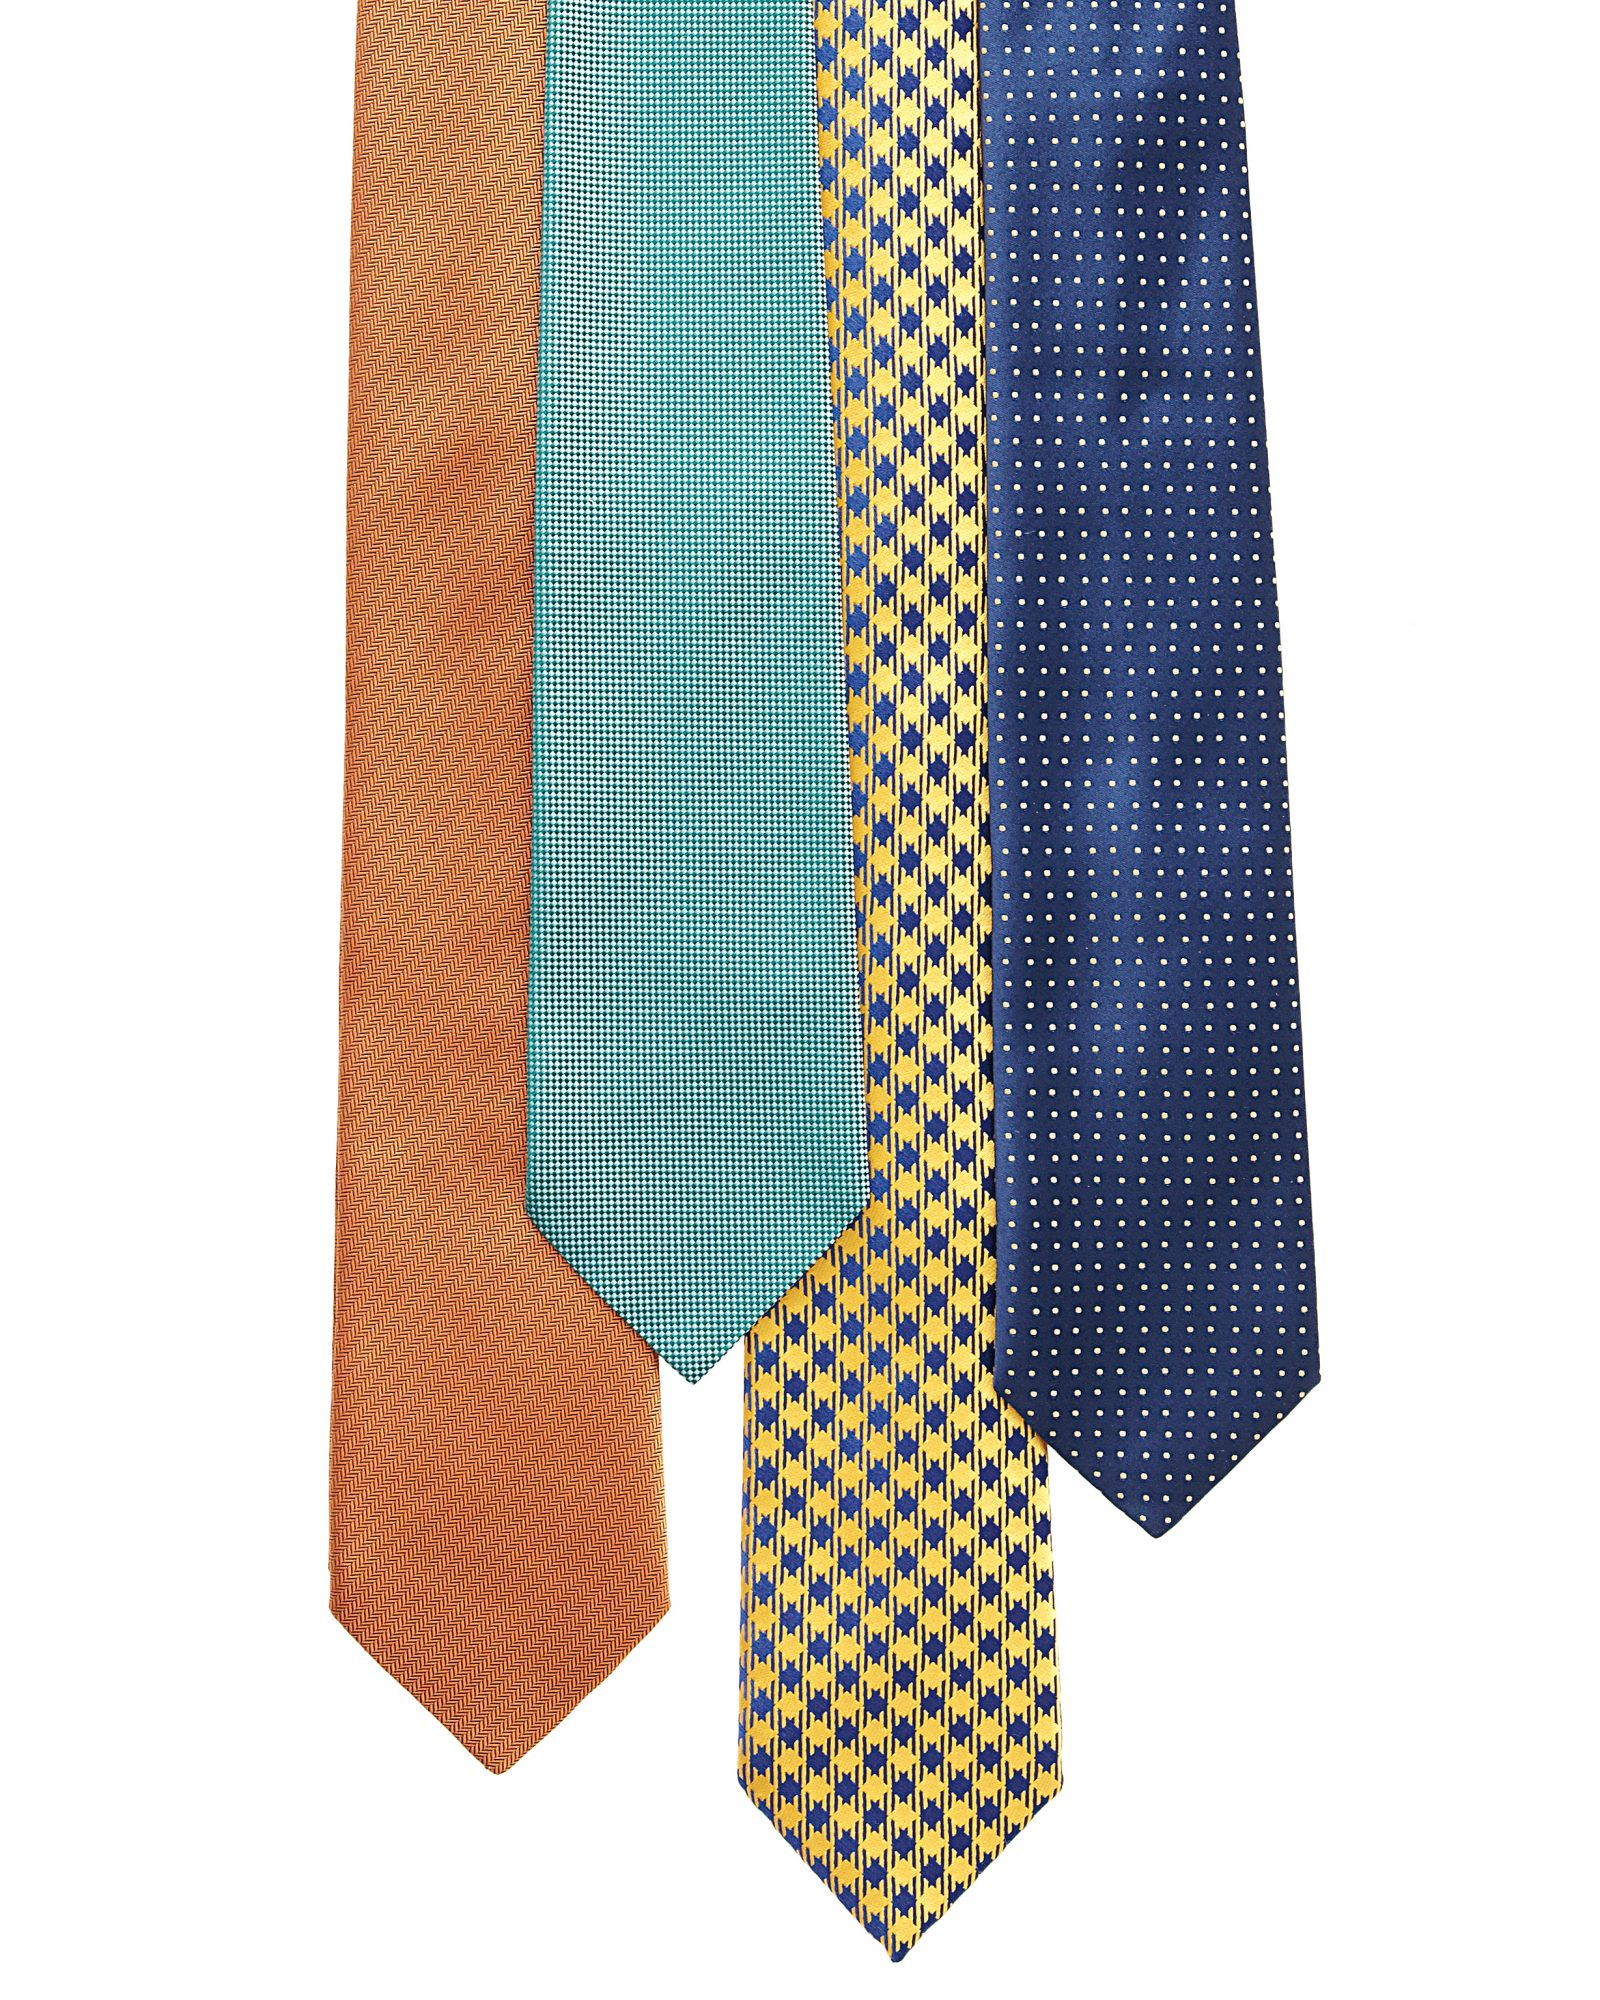 fashion-ties-0811mwd107539.jpg